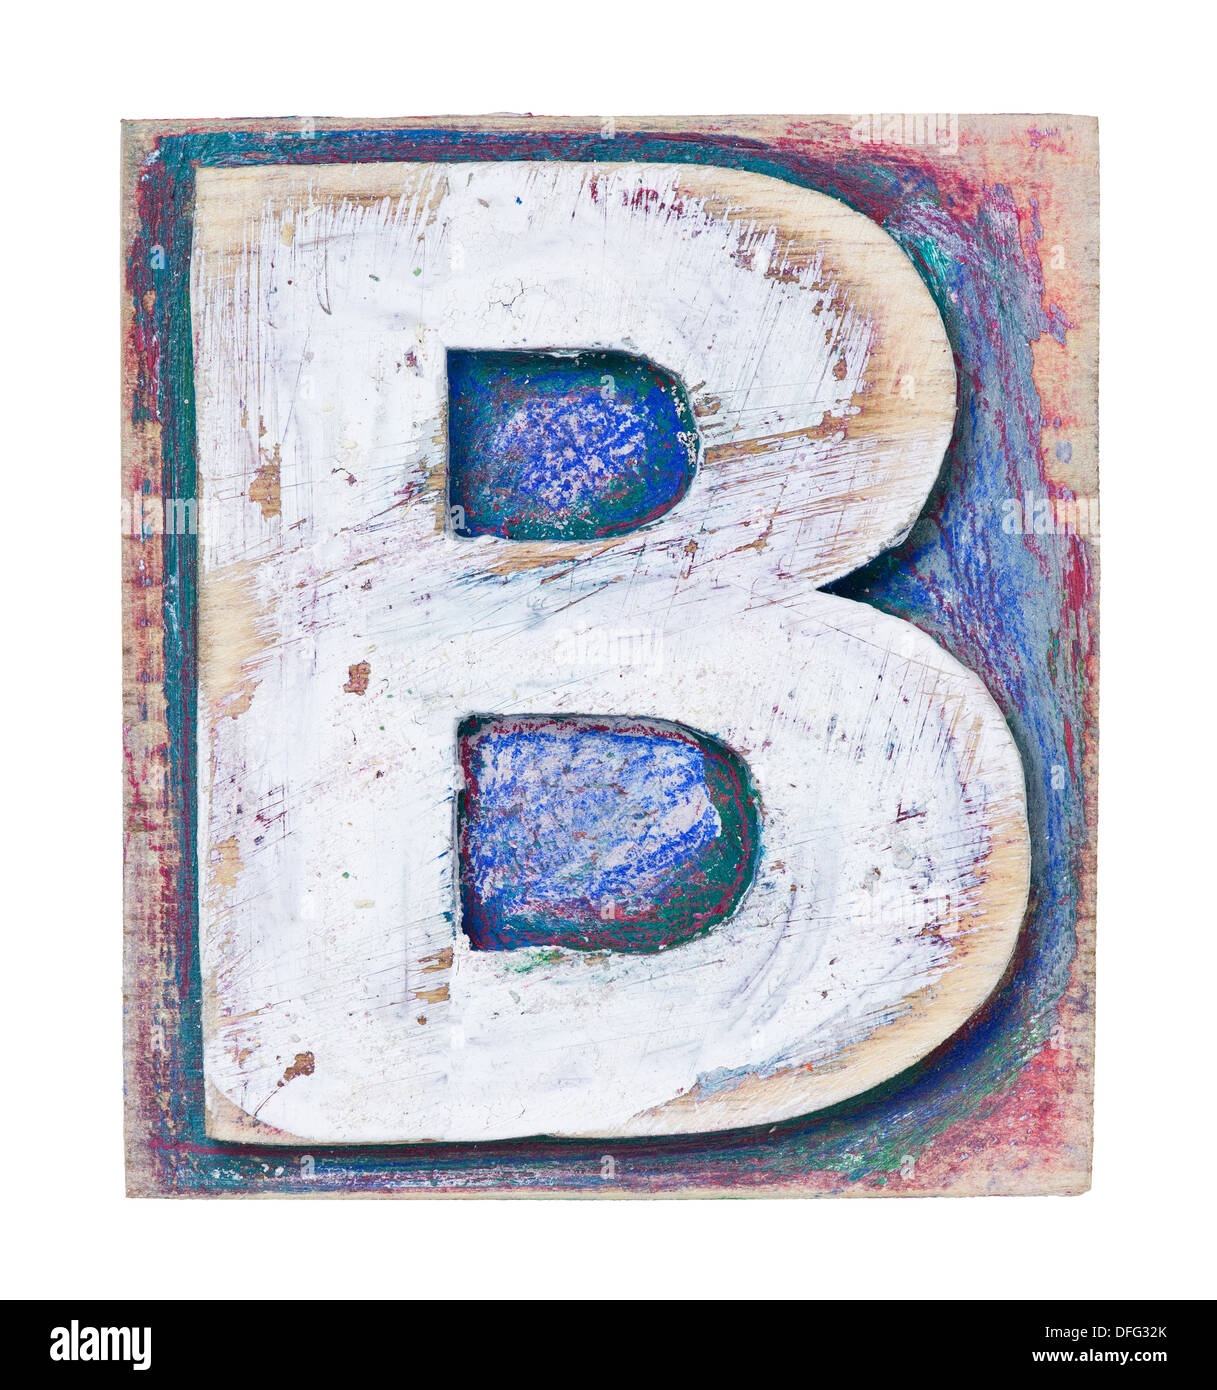 Wooden alphabet block, letter B Stock Photo: 61204603 - Alamy